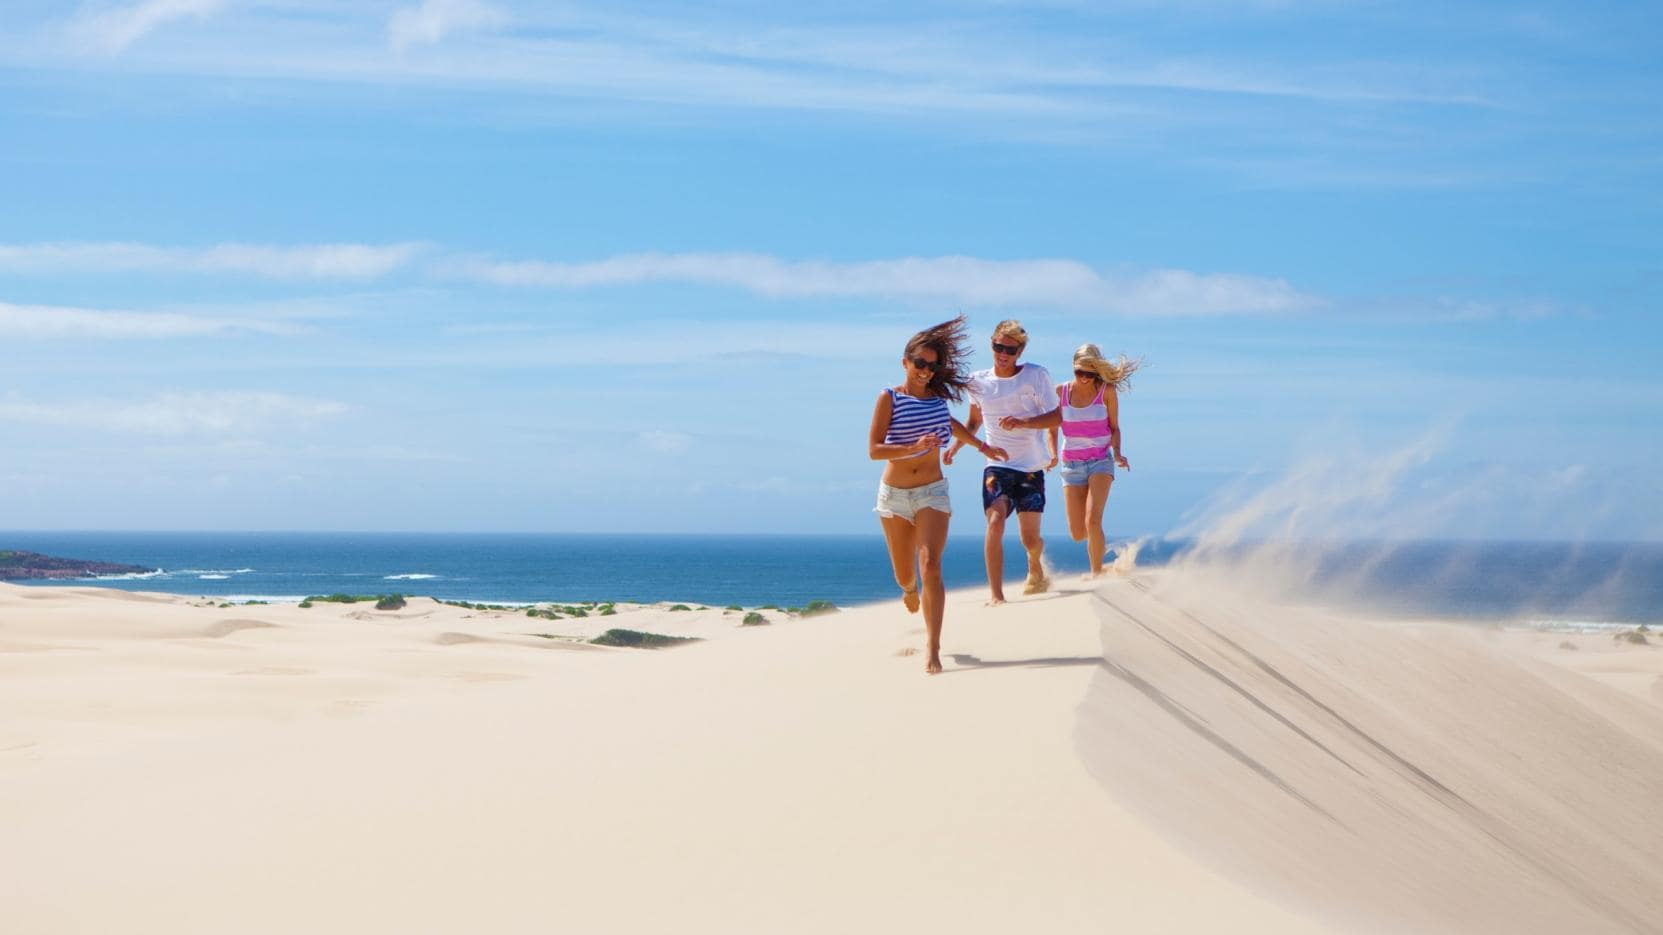 Stockton Bight Sand Dunes, Port Stephens, NSW. © Tourism Australia